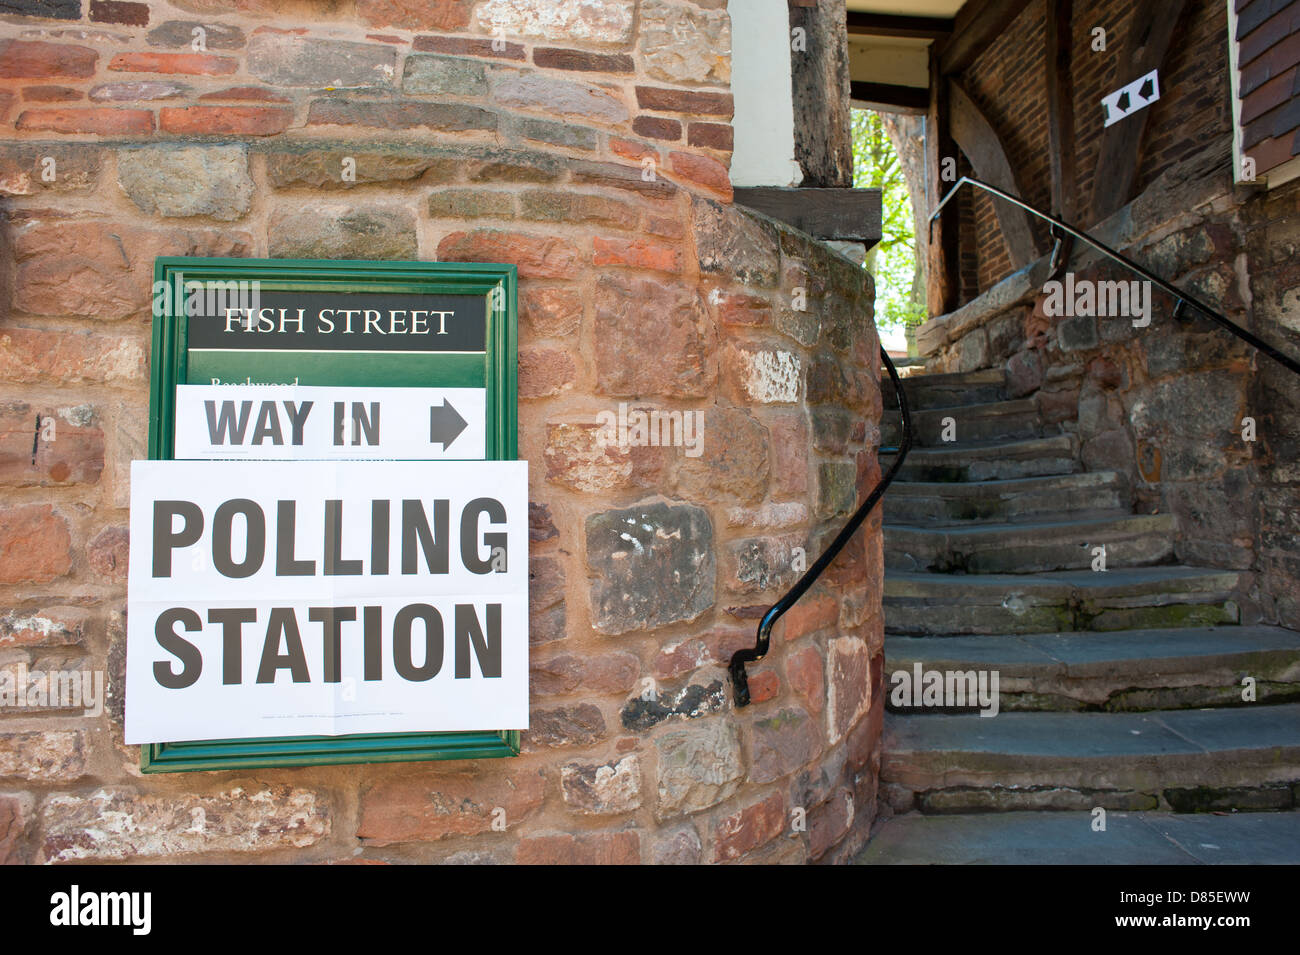 Directions to a polling station in Shrewsbury, Shropshire, England. - Stock Image